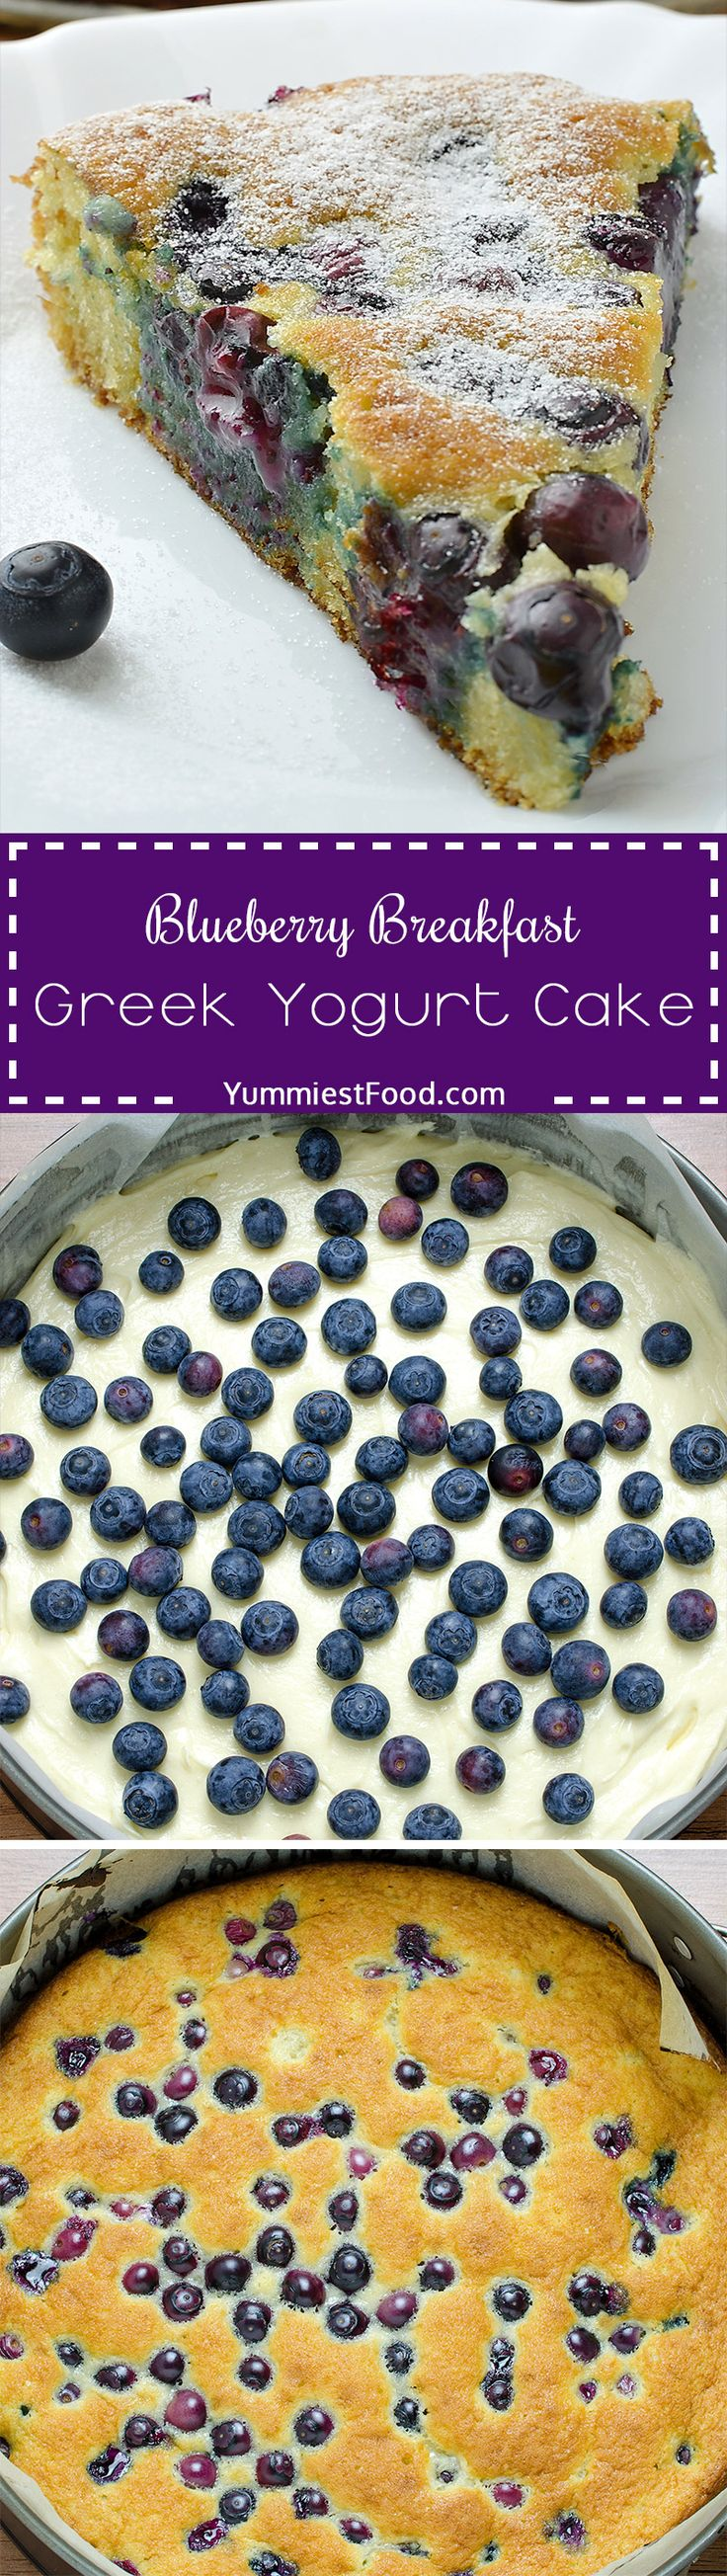 Blueberry Breakfast Greek Yogurt Cake is super easy, healthy and tasty Greek yogurt cake recipe! It is really perfect for breakfast or snack! Blueberry Breakfast Greek Yogurt Cake is soft, moist and fluffy with blueberries in every single bite!